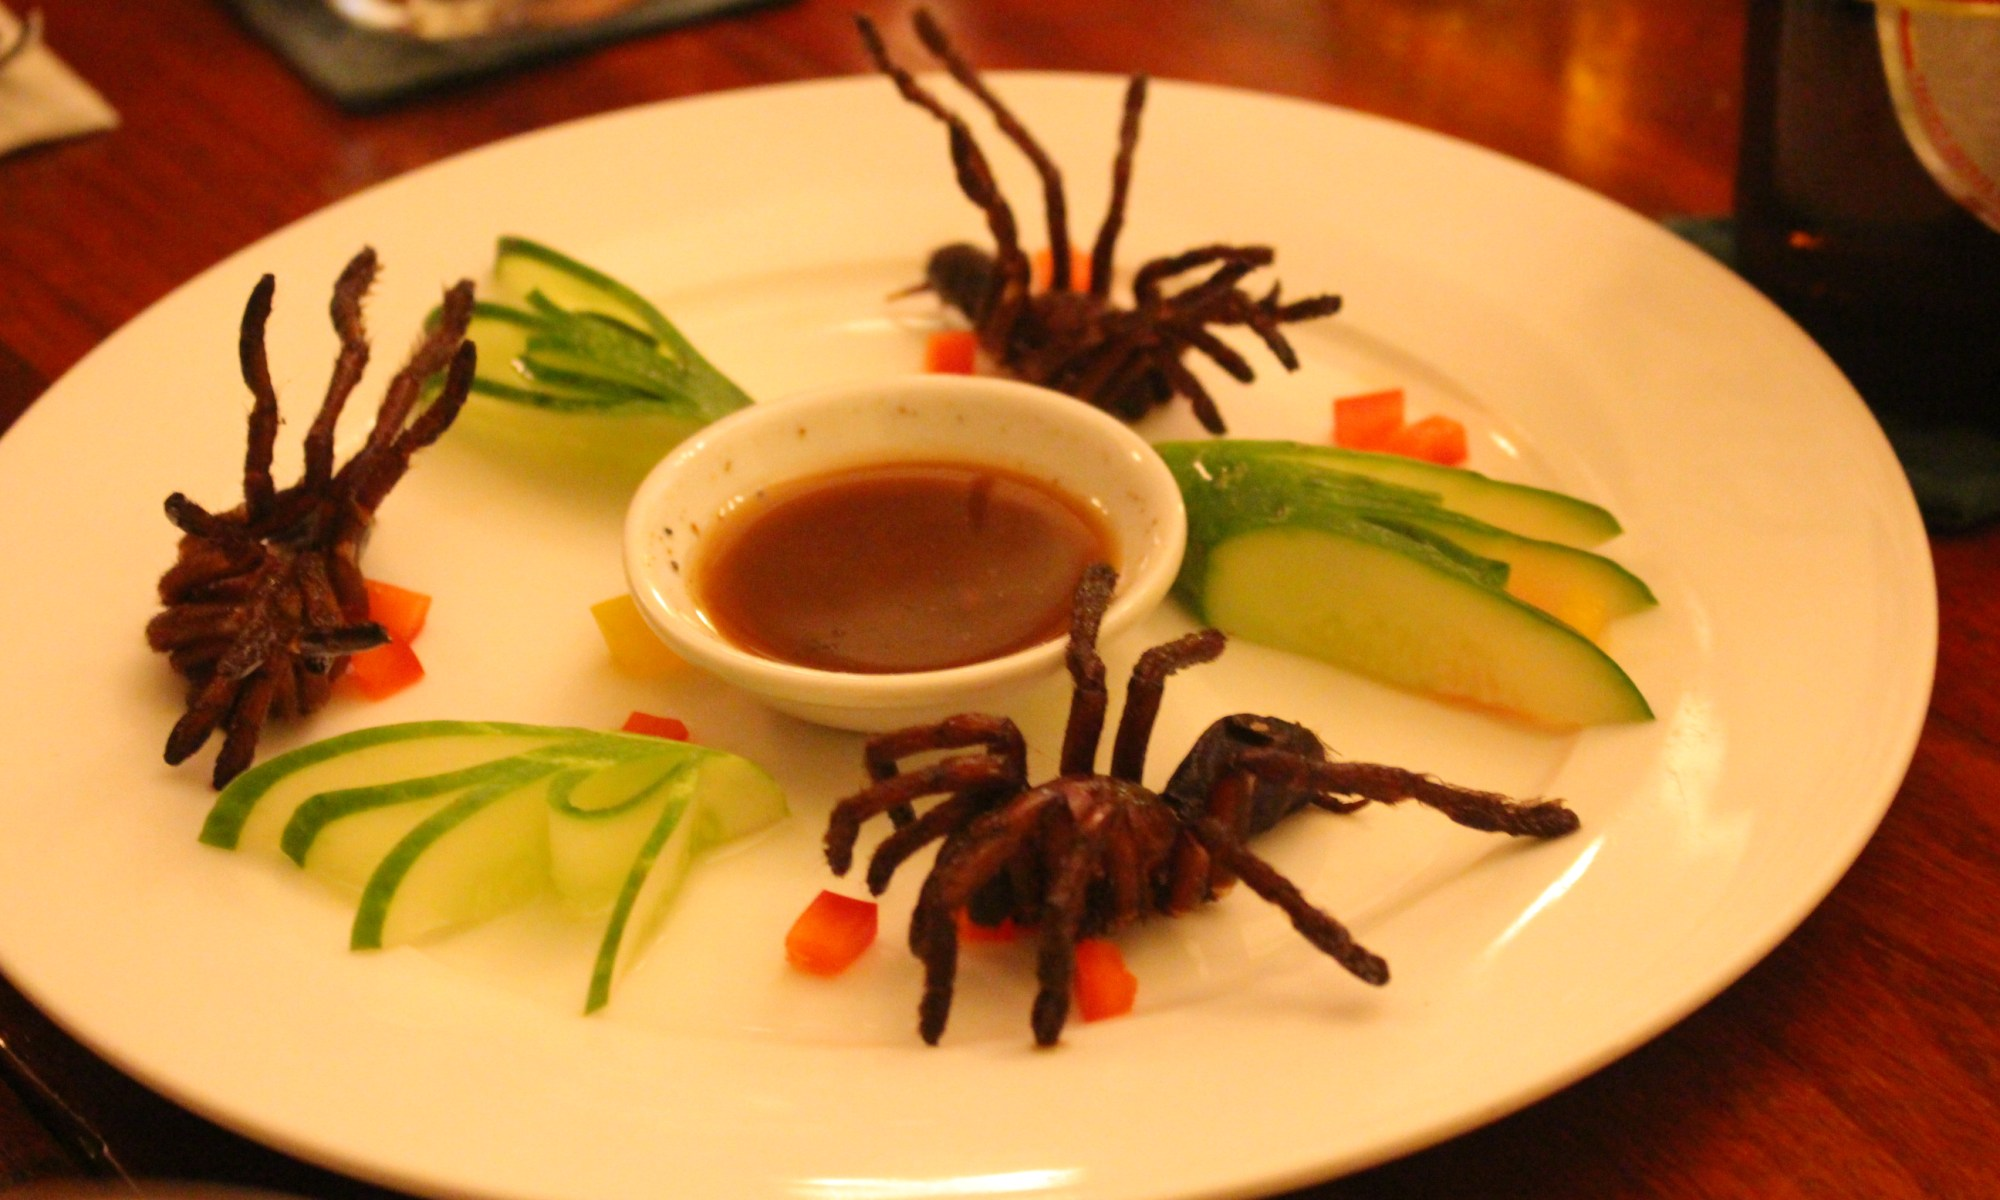 Fried tarantula, Romdeng restaurant in Cambodia